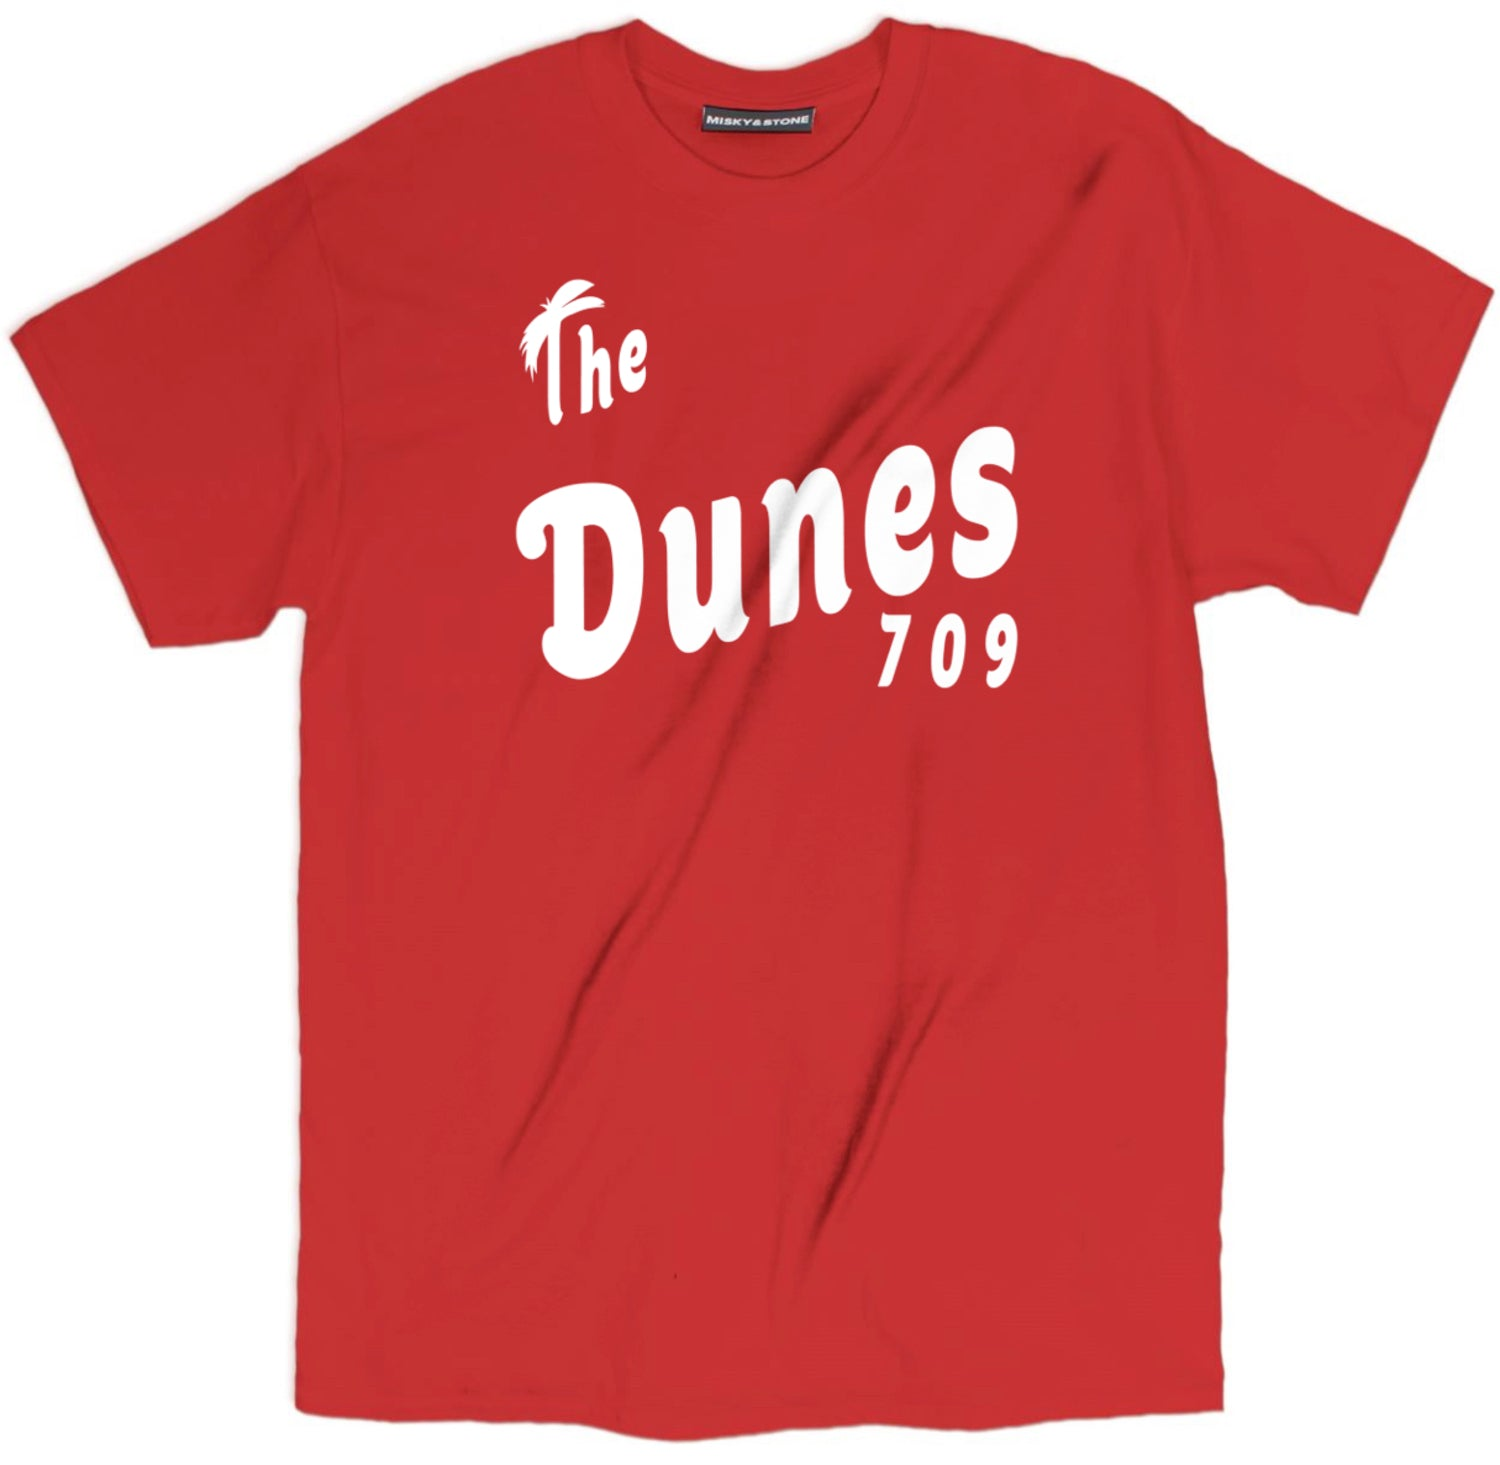 the dunes 709 t shirts, the dunes 709 shirt, insecure tv show t shirt,